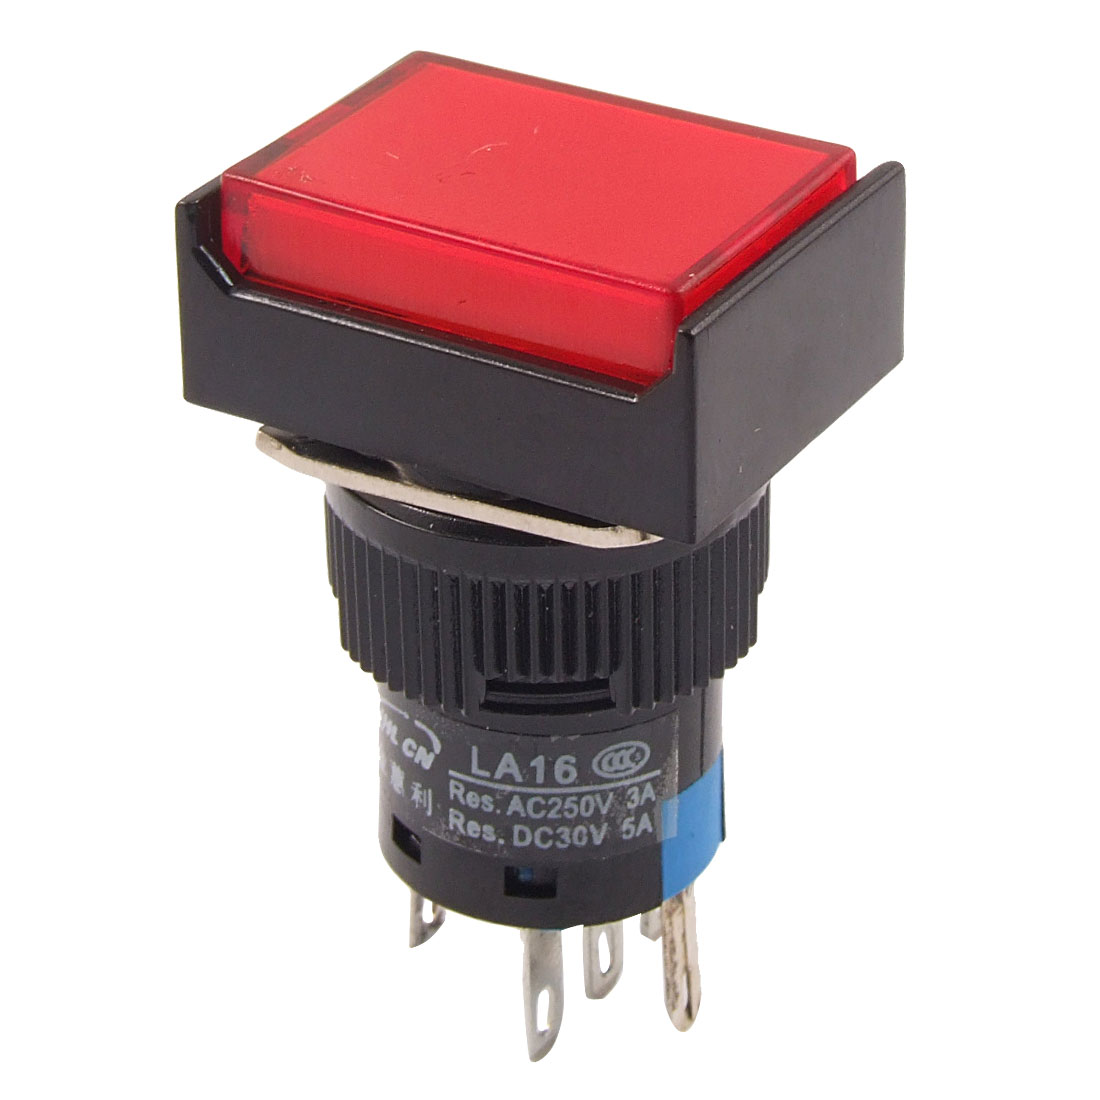 DC 24V Red Neon Light Rectangle 1NO 1NC Momentary Push Button Switch